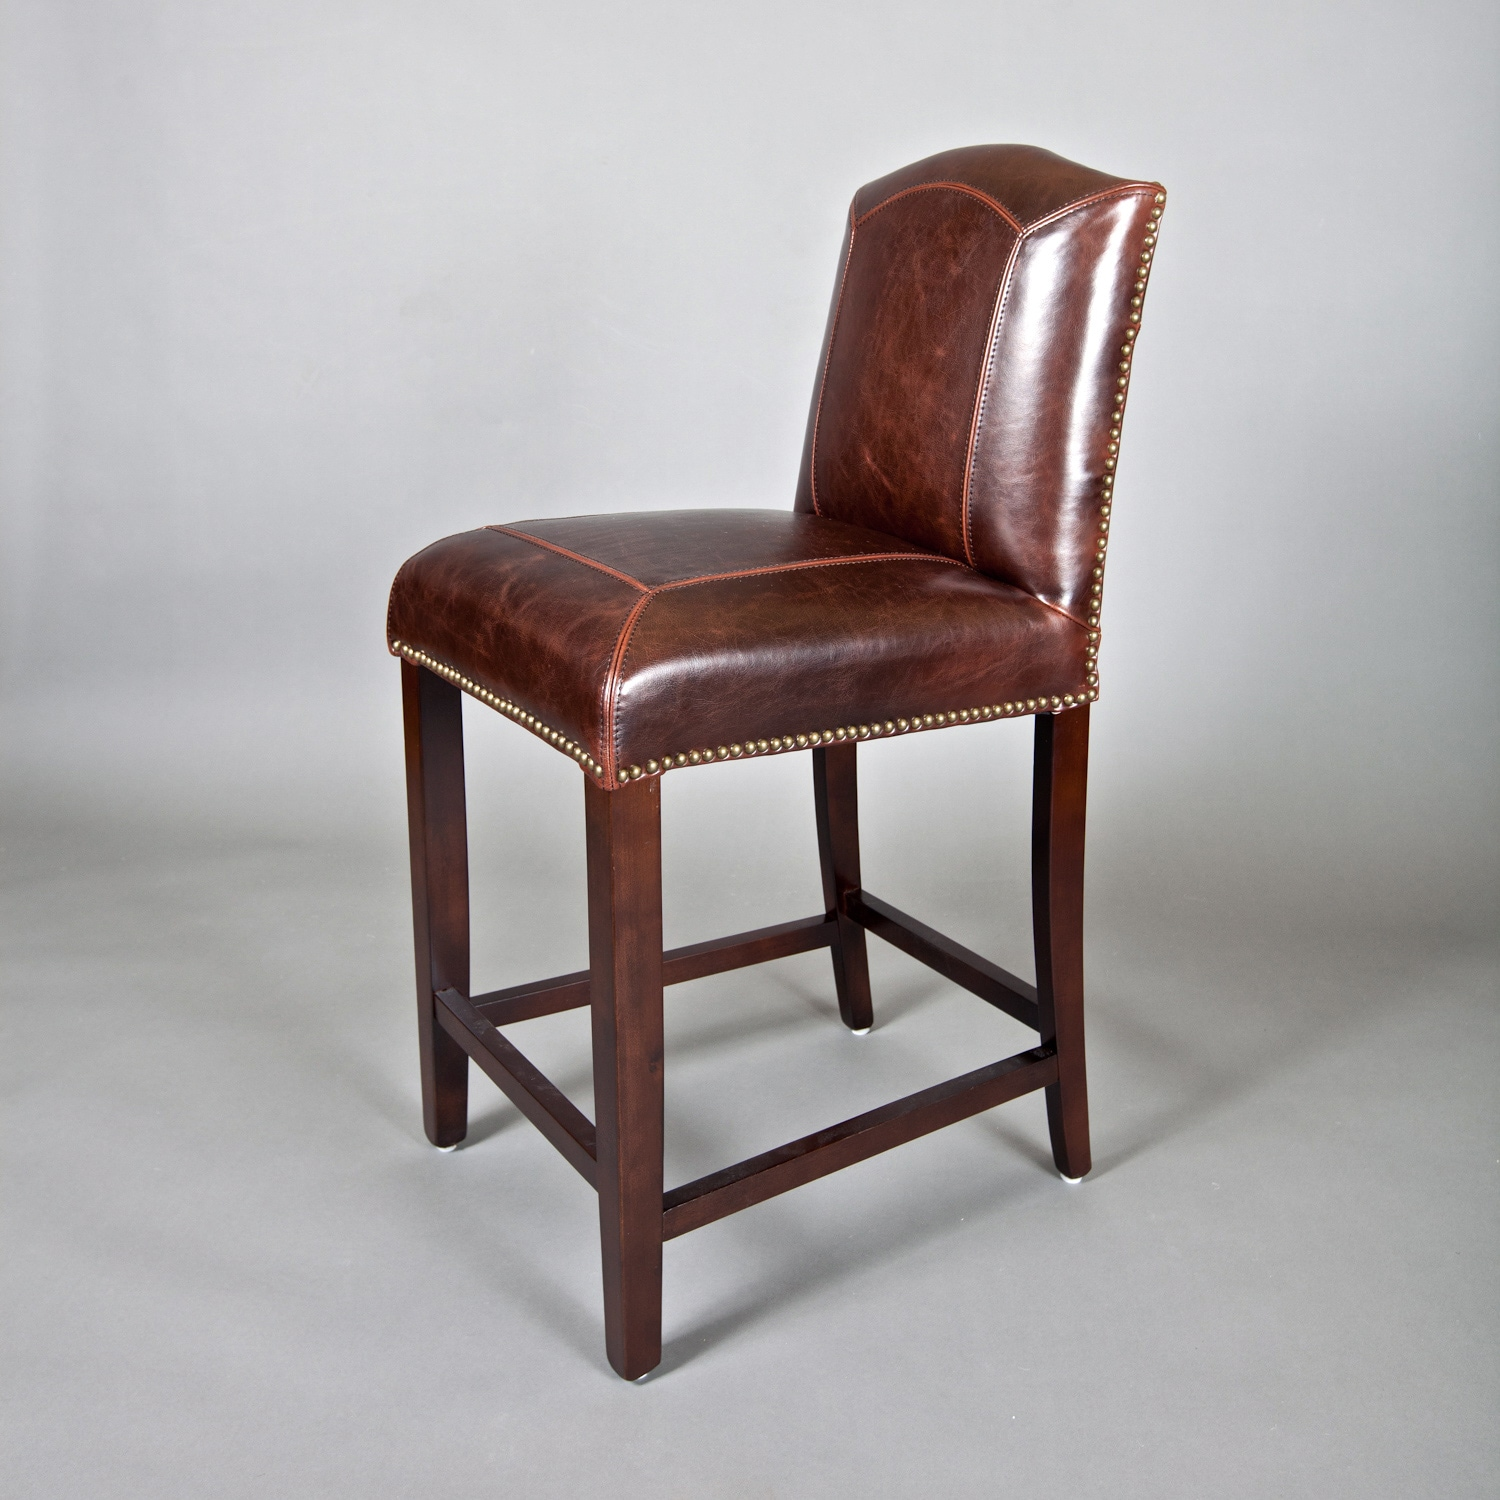 Leather counter stool overstock shopping great deals on bar stools